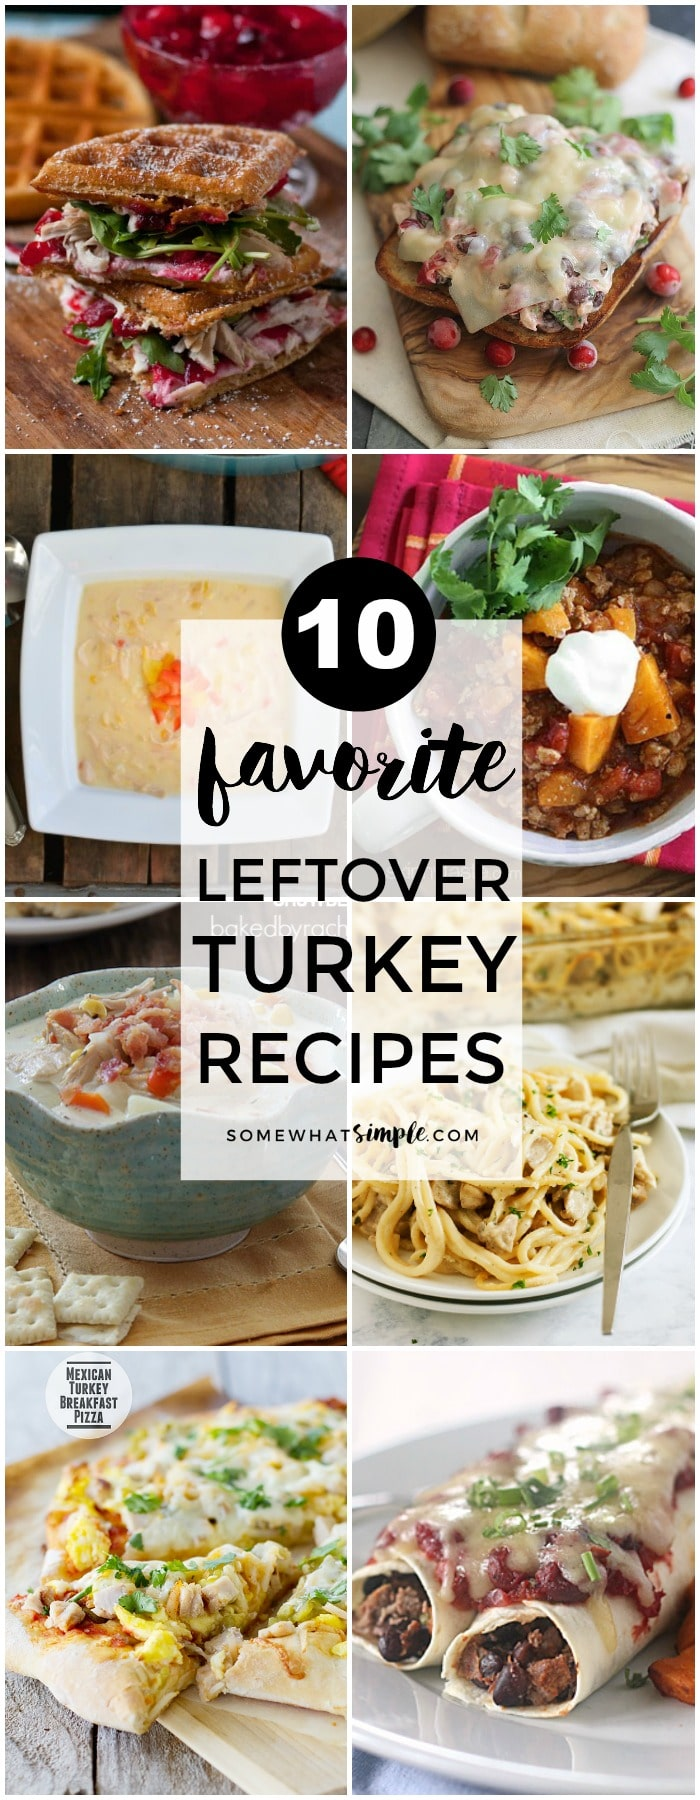 10 Favorite Leftover Turkey Recipes